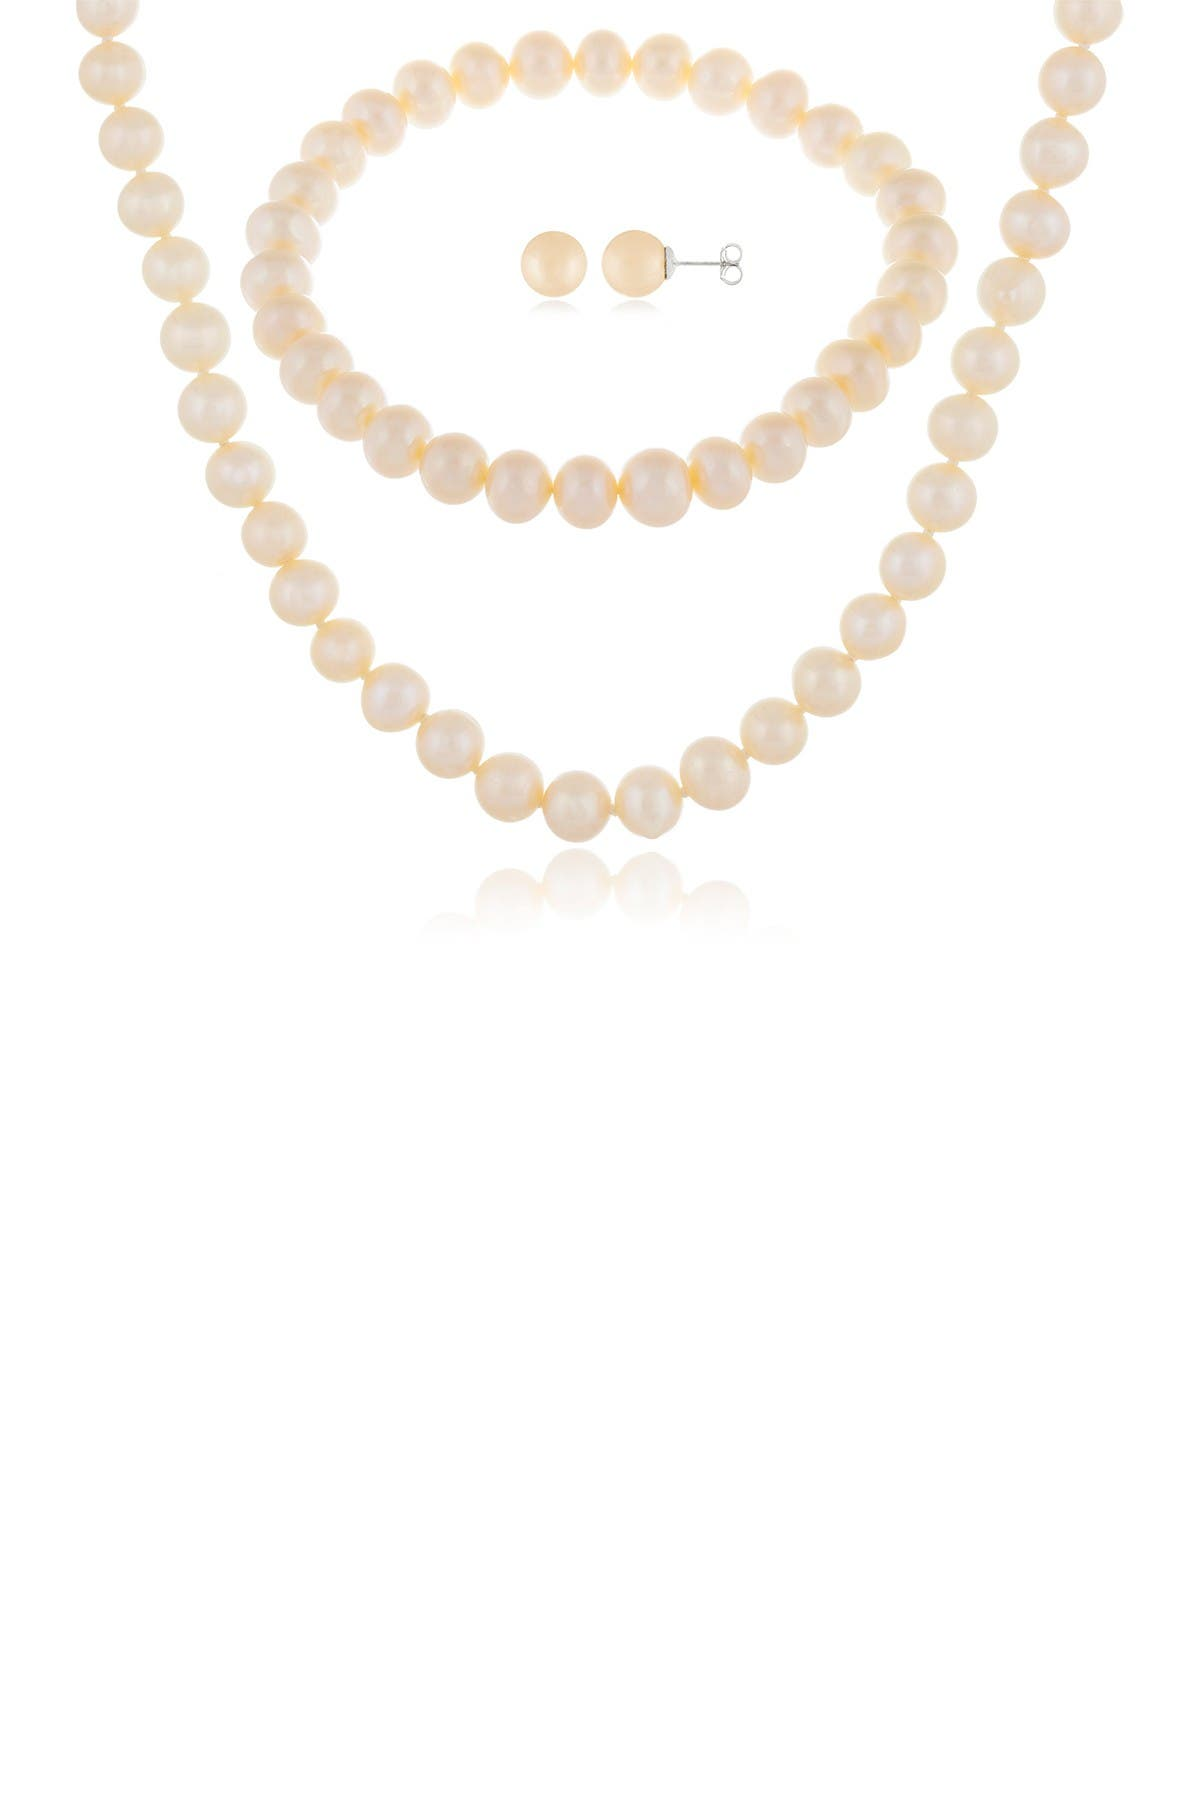 Image of Splendid Pearls 7-8mm Natural White Cultured Freshwater Pearl 3-Piece Earring Necklace & Bracelet Set